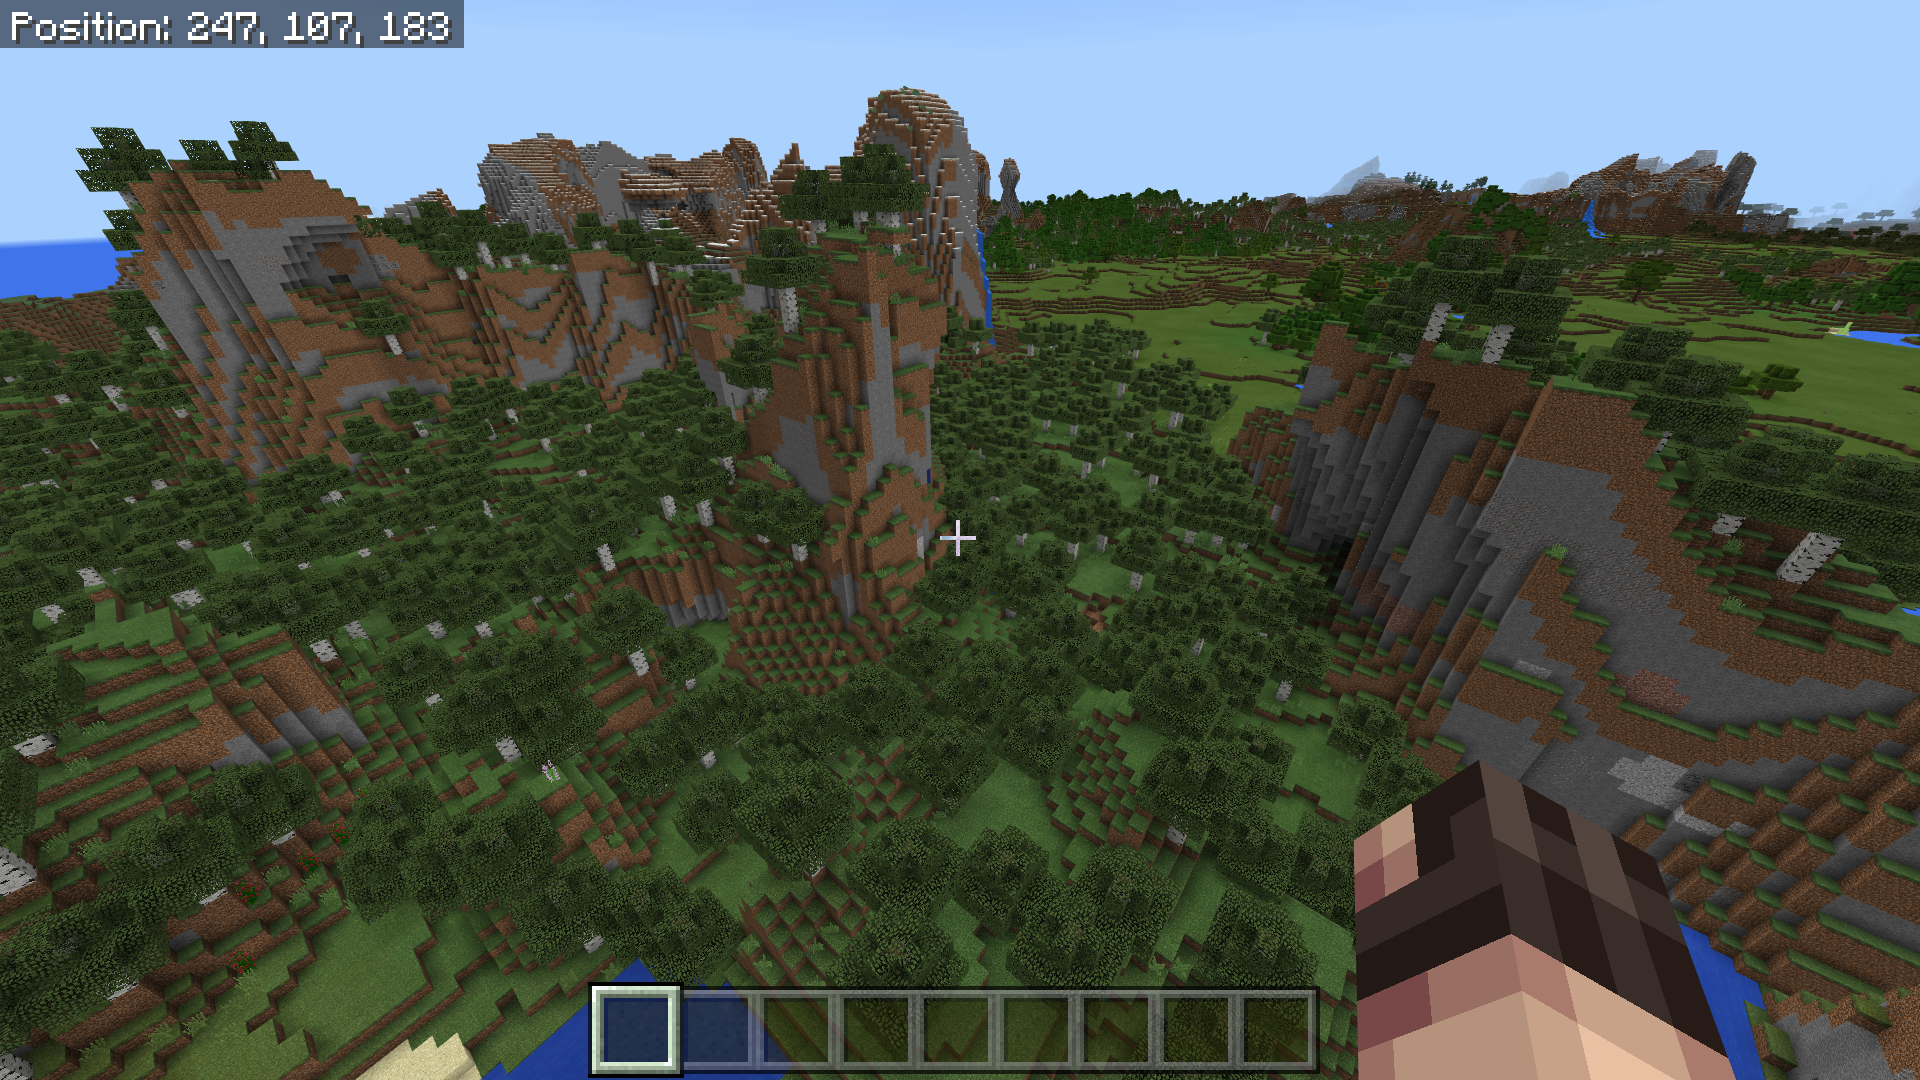 MCPE-29698] Birch Forest M biome does not generate tall Birch Trees